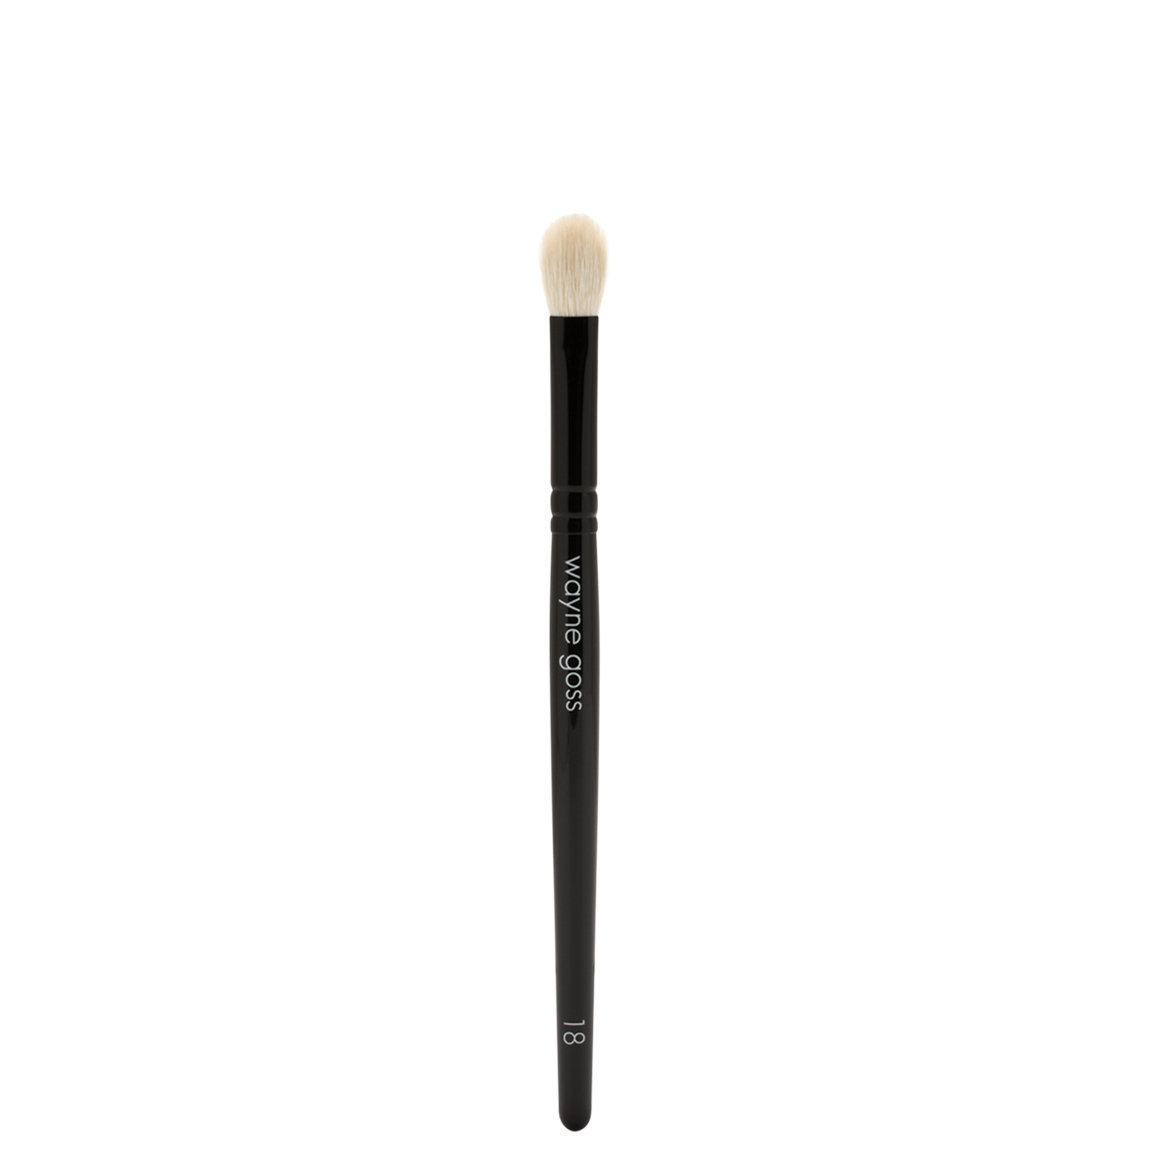 Wayne Goss Brush 18 Eye Shadow Blending Brush